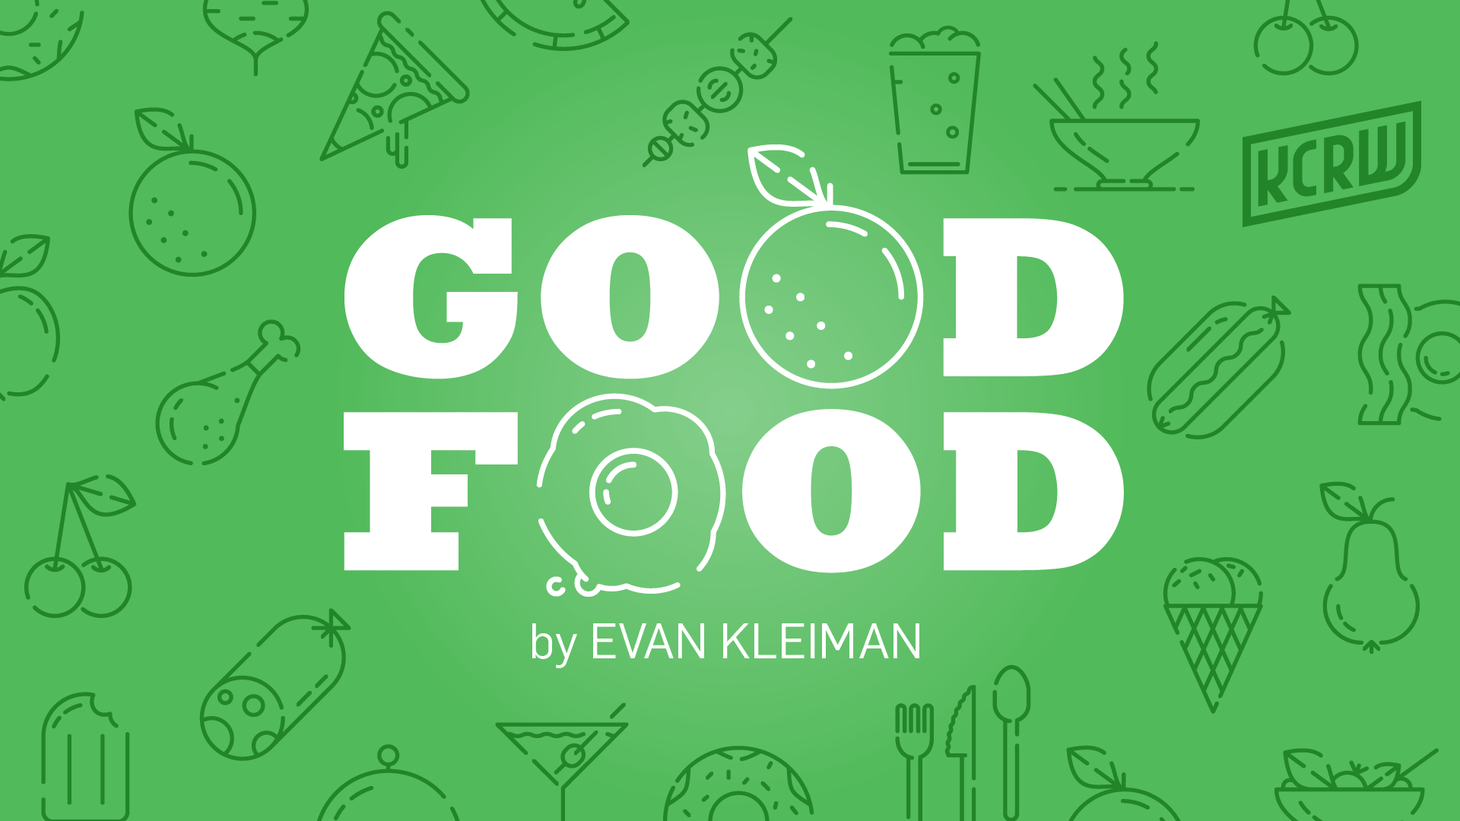 """This Saturday on """"Good Food"""" join host Evan Kleiman as we talk all about noodles - Asian noodles of all kinds and Jonathan Gold's Top 10 noodle restaurants. We'll hear from a Chinese chef about Chinese cuisine, visit a peach farmer in Fresno and get a taste of Hawaiian vintage chocolate. All this and the Farmer's Market Report today on """"Good Food.&quot"""